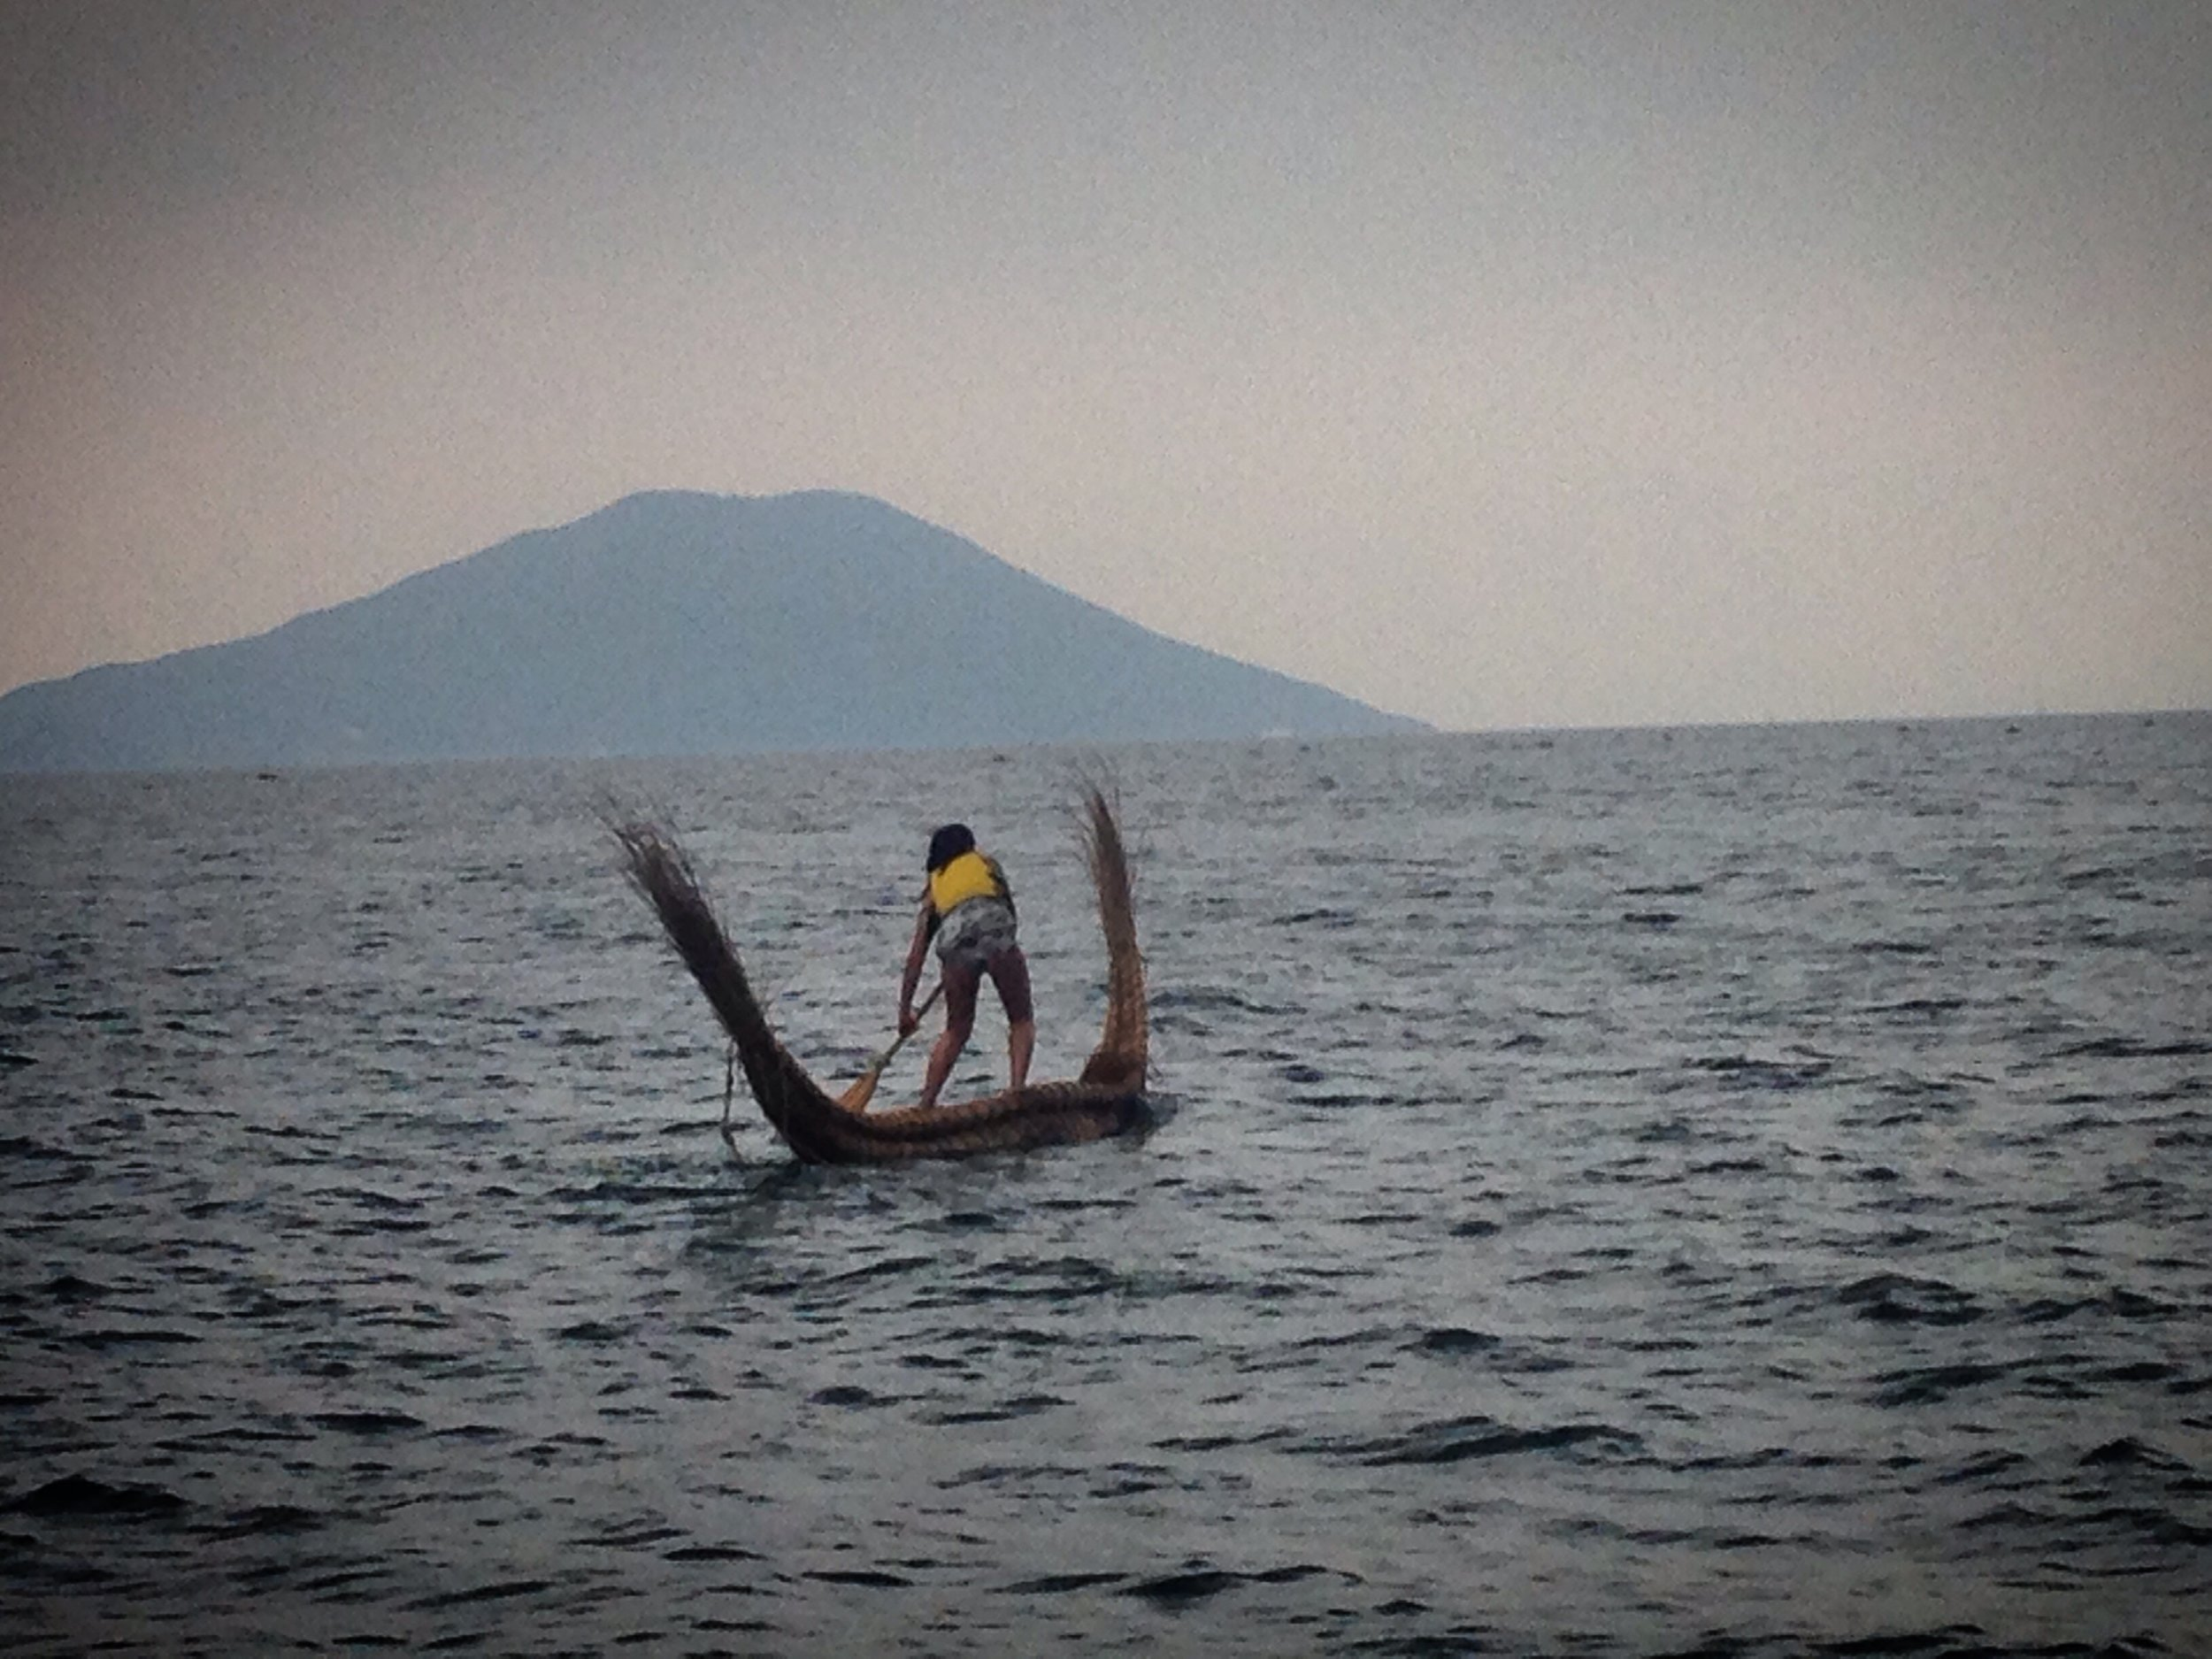 Paddling out into the Seto Inland Sea on a traditional Japanese wasen